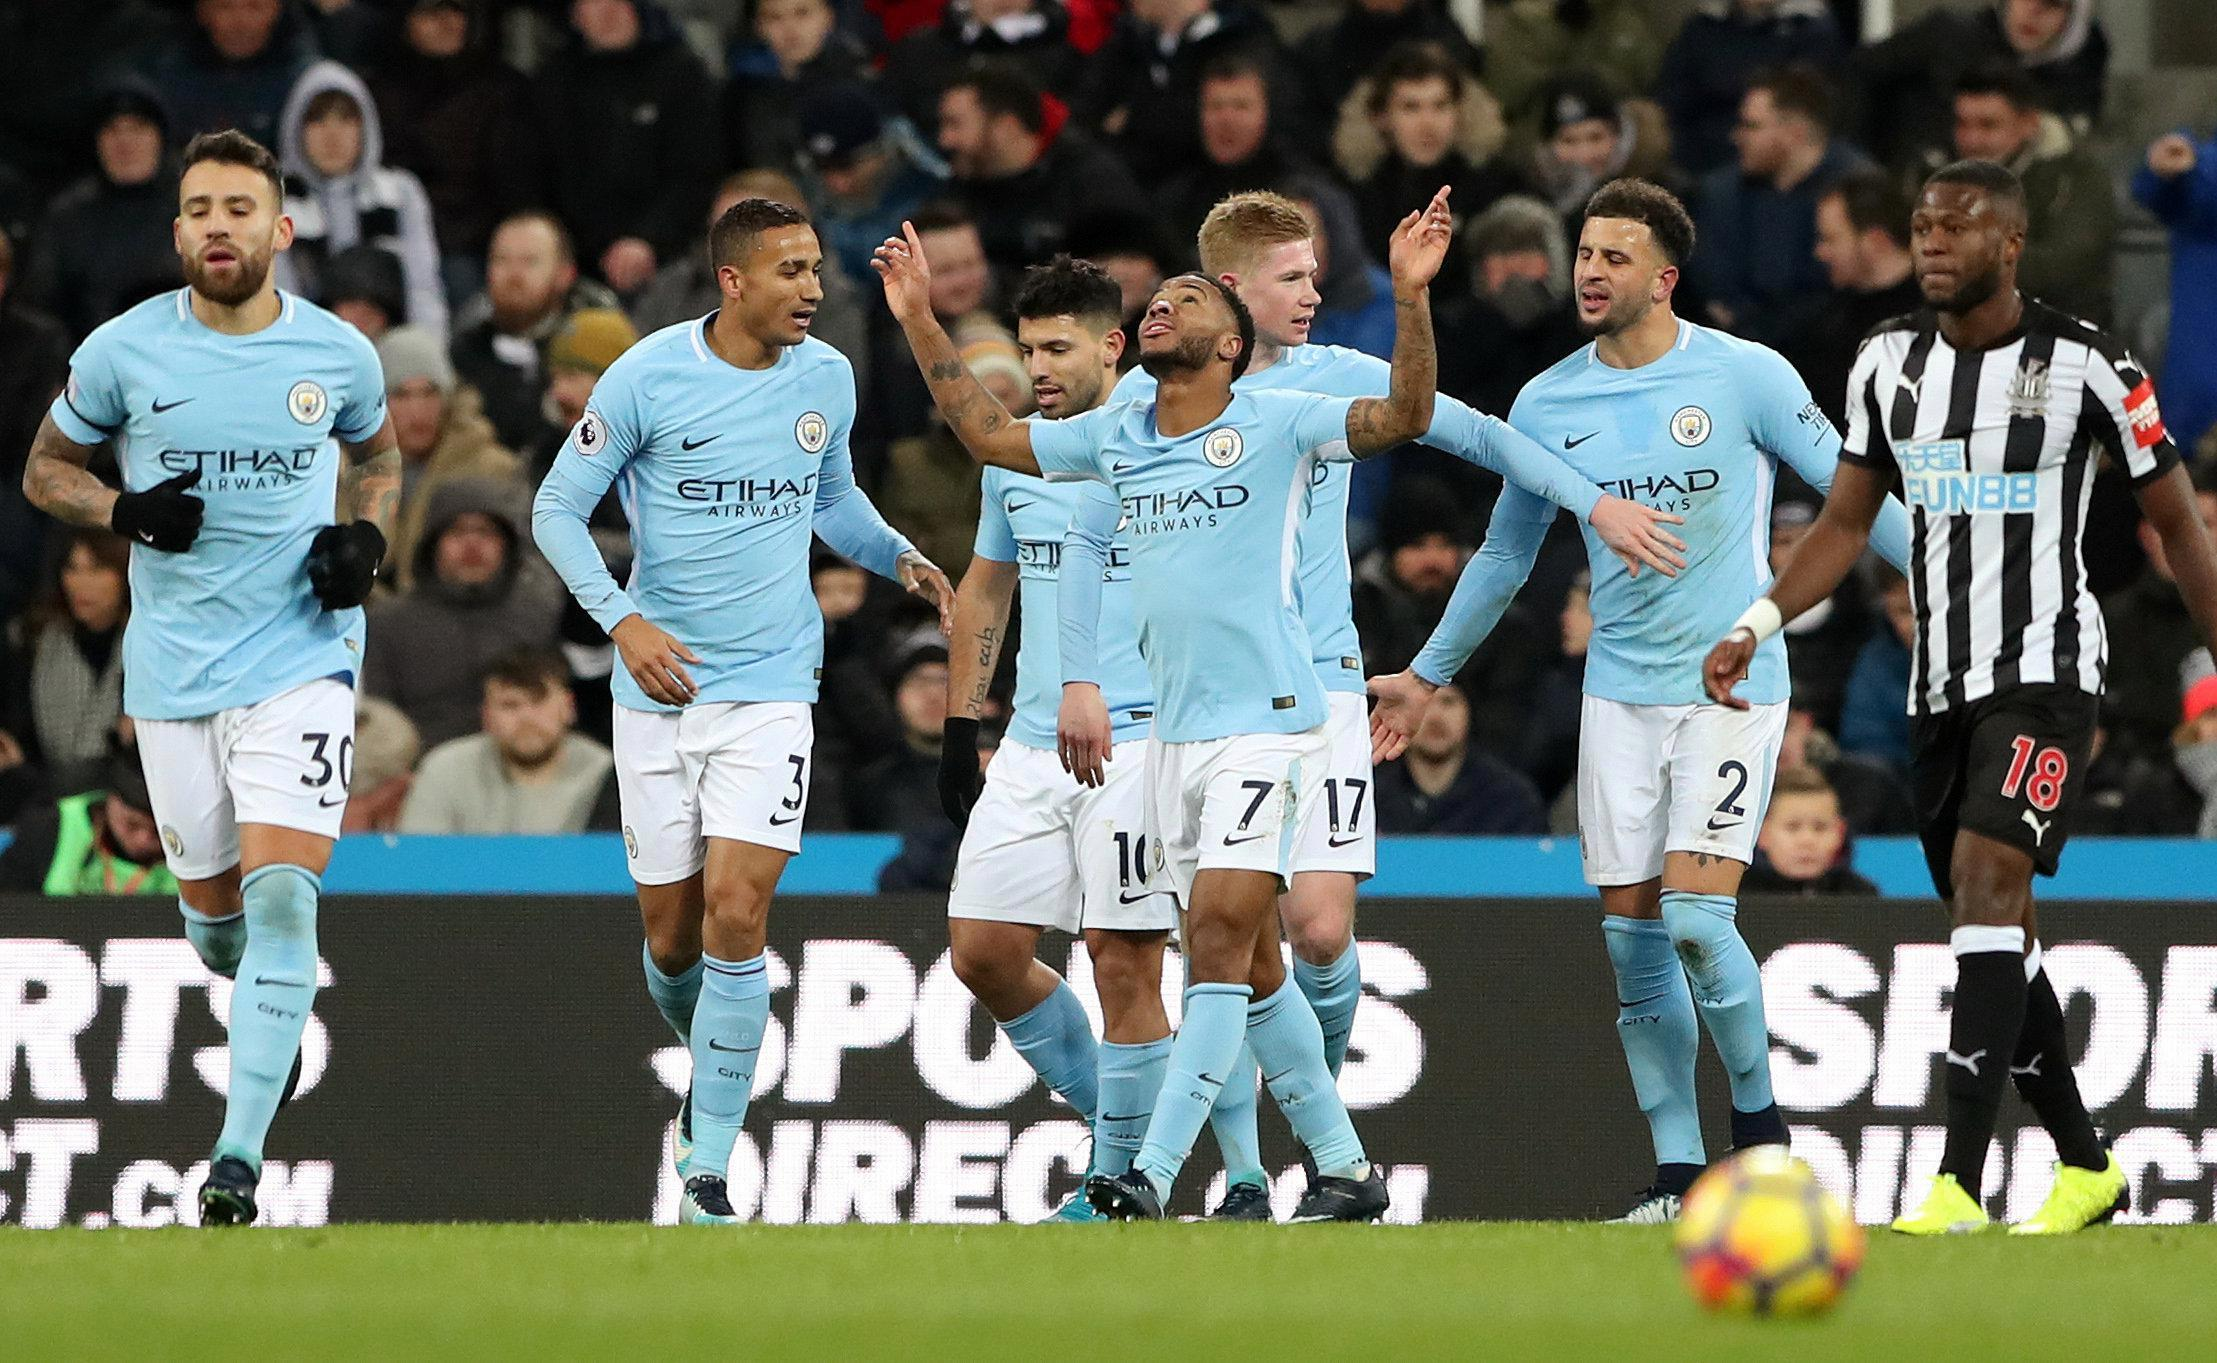 Raheem Sterling helped fire Manchester City 15 points clear at the top of the Premier League with victory at Newcastle